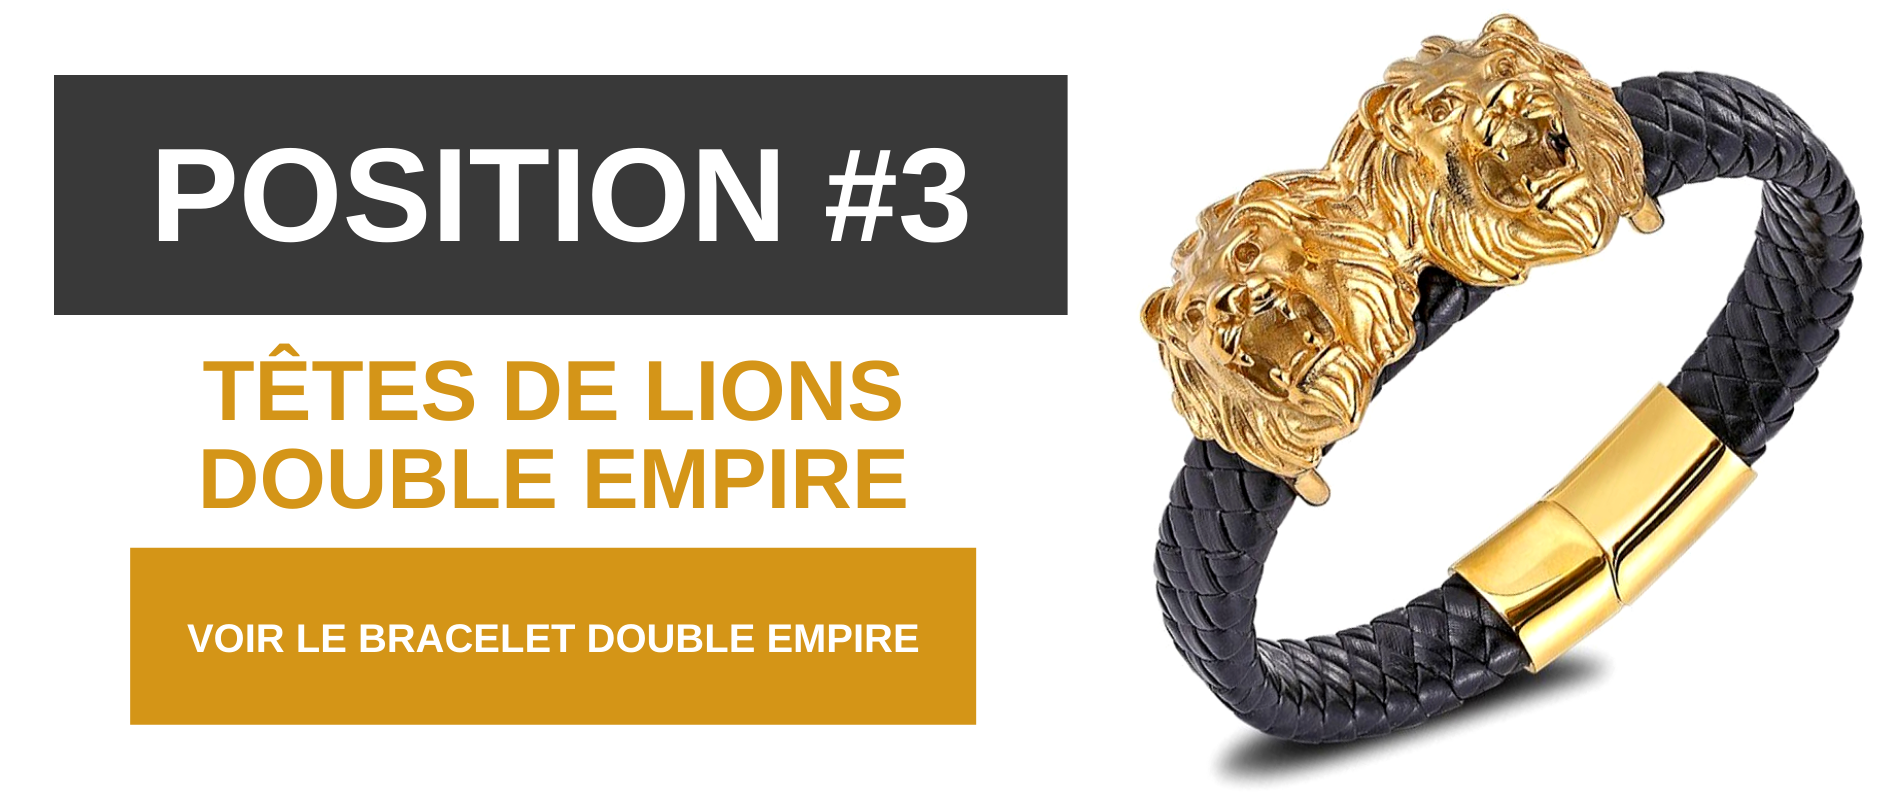 Bracelet têtes de lion double empire.